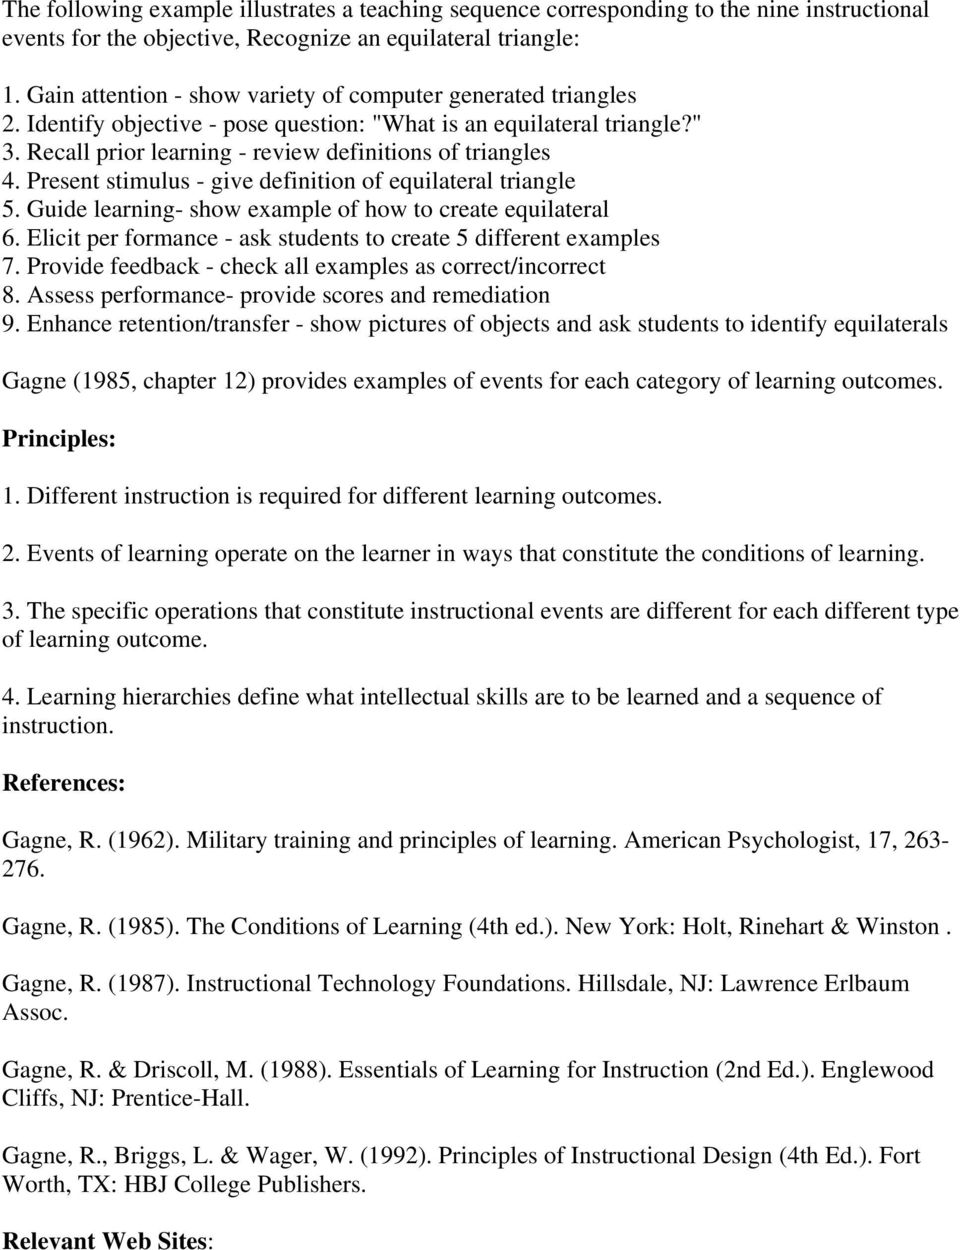 Conditions Of Learning R Gagne Pdf Free Download